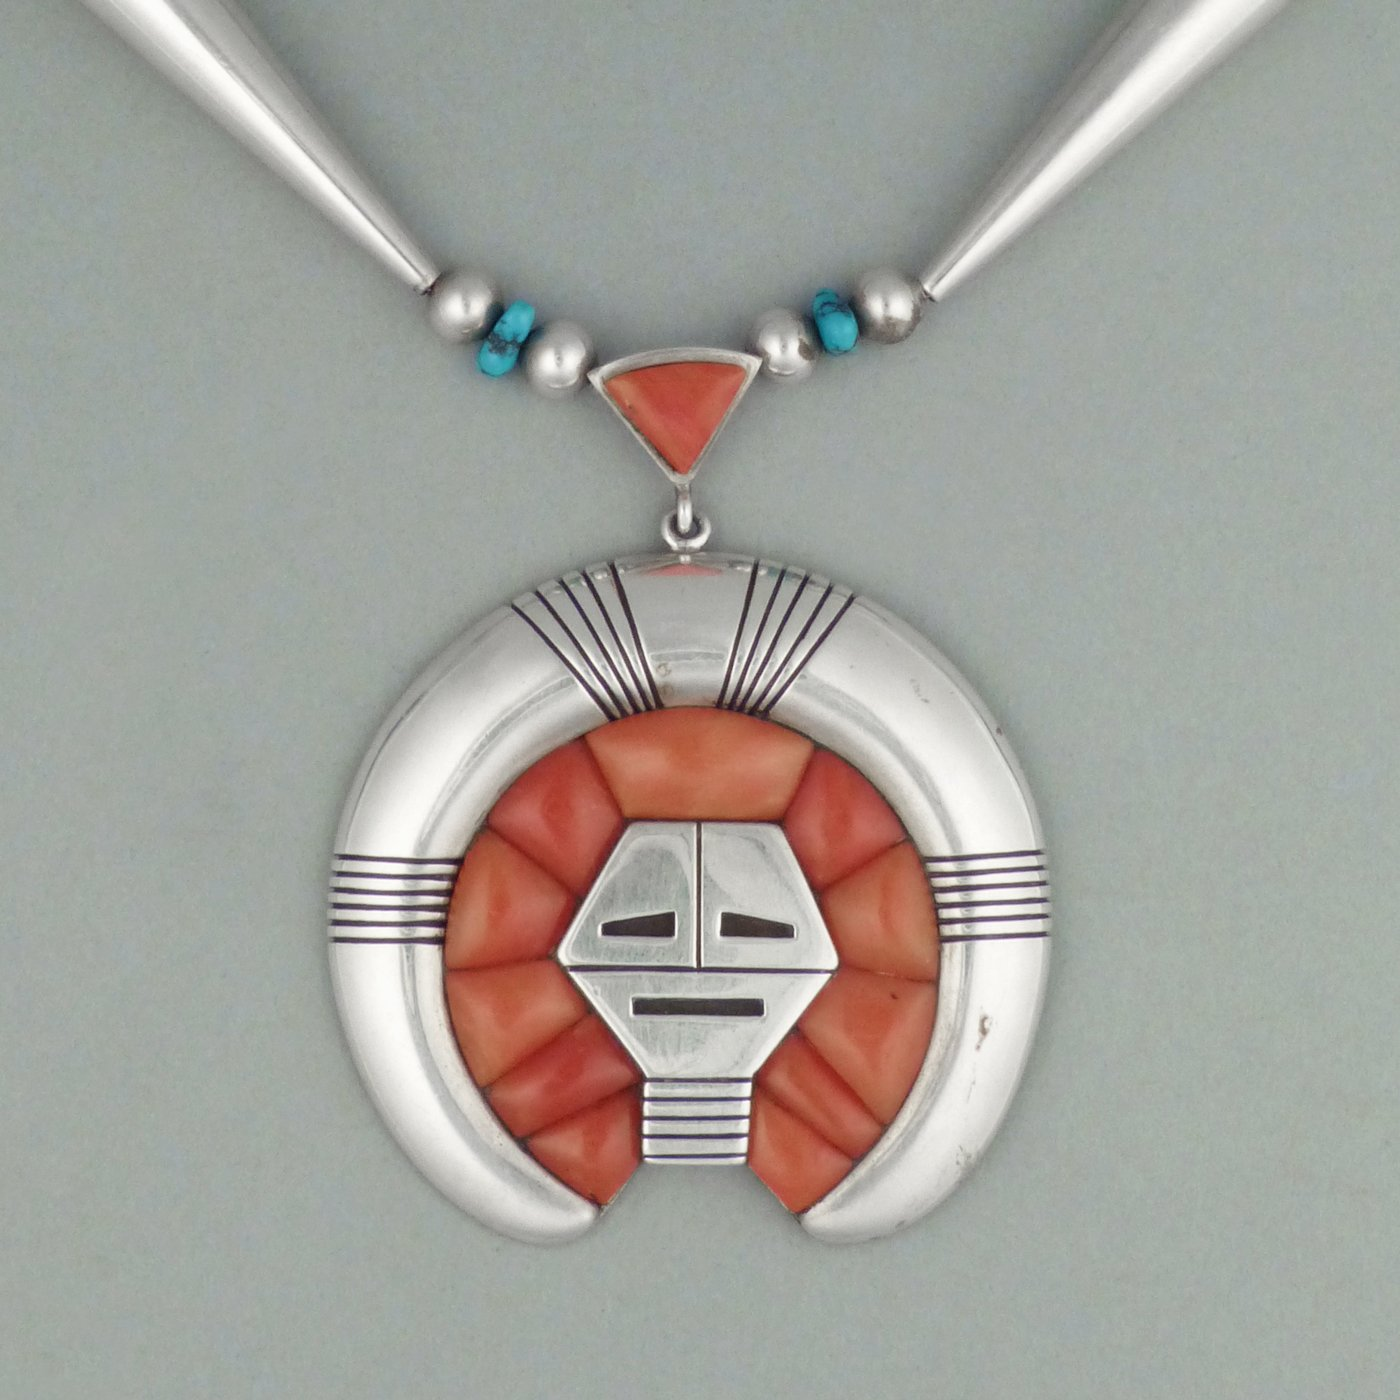 defauto jewels town turquoise navajo necklace pendant sold old june product